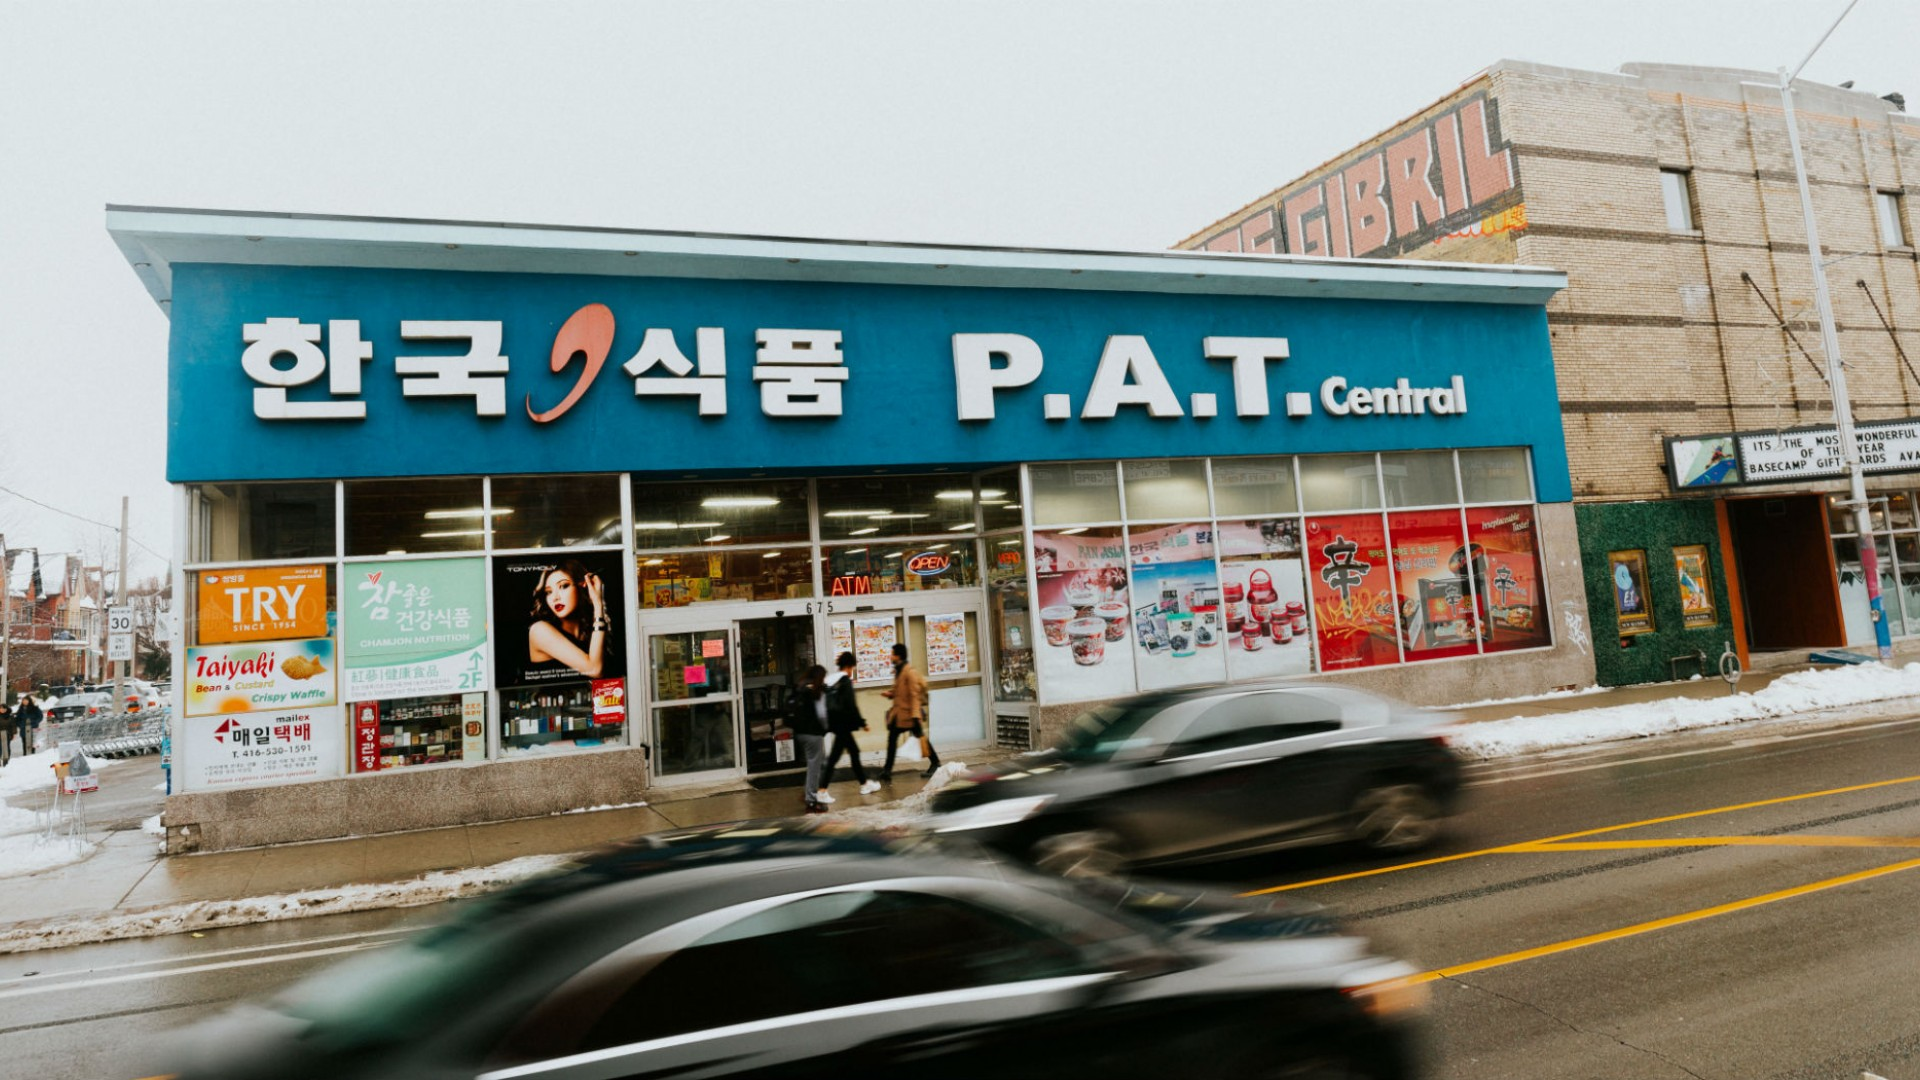 kids-of-koreatown-PAT-2